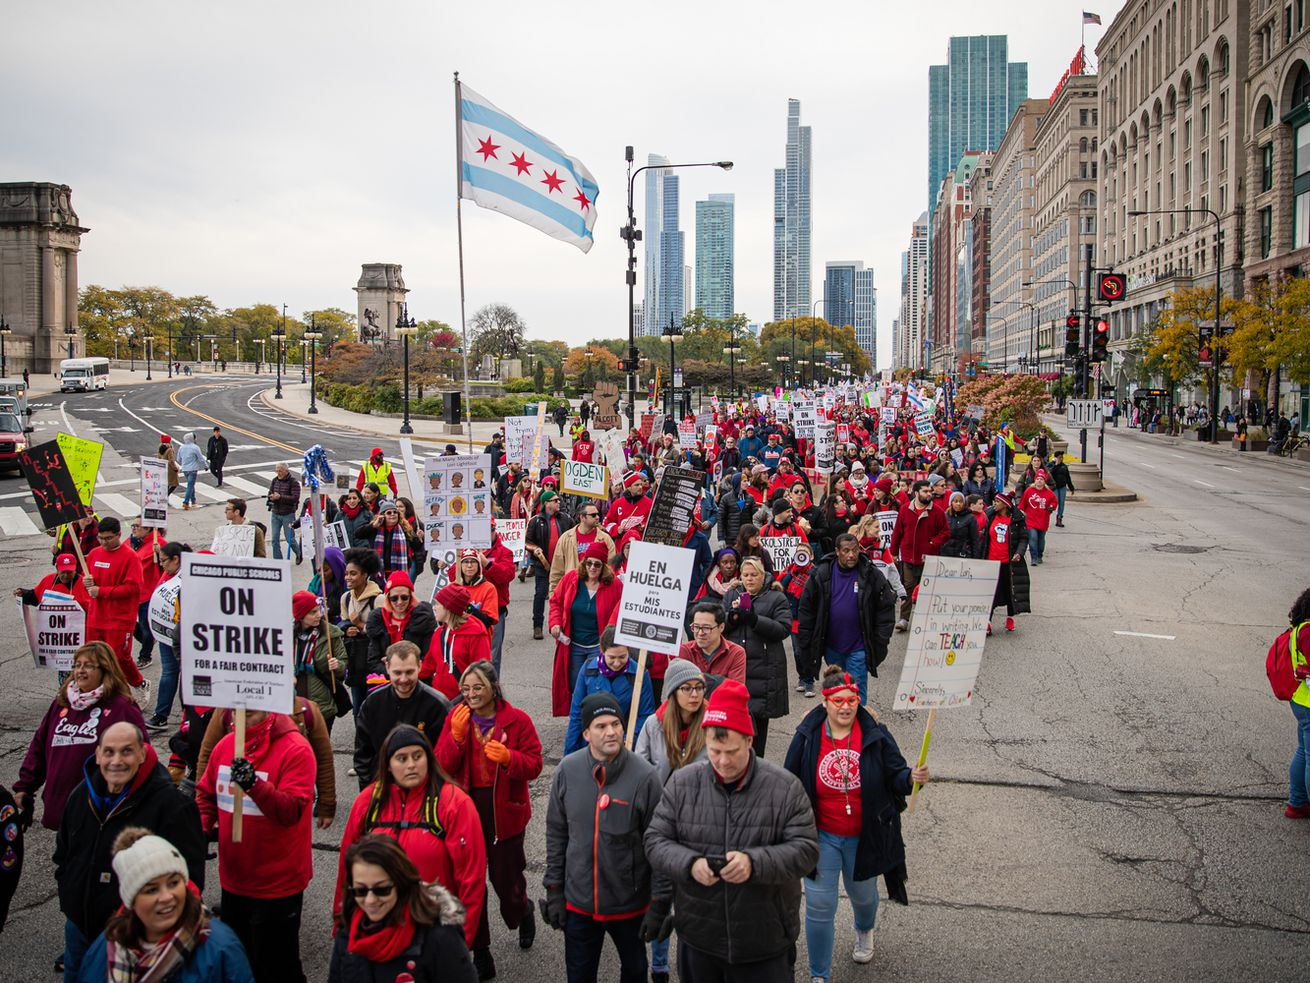 Members of the Chicago Teachers Union and SEIU Local 73 rallying on South Michigan Avenue during the teachers' two-week strike last fall.